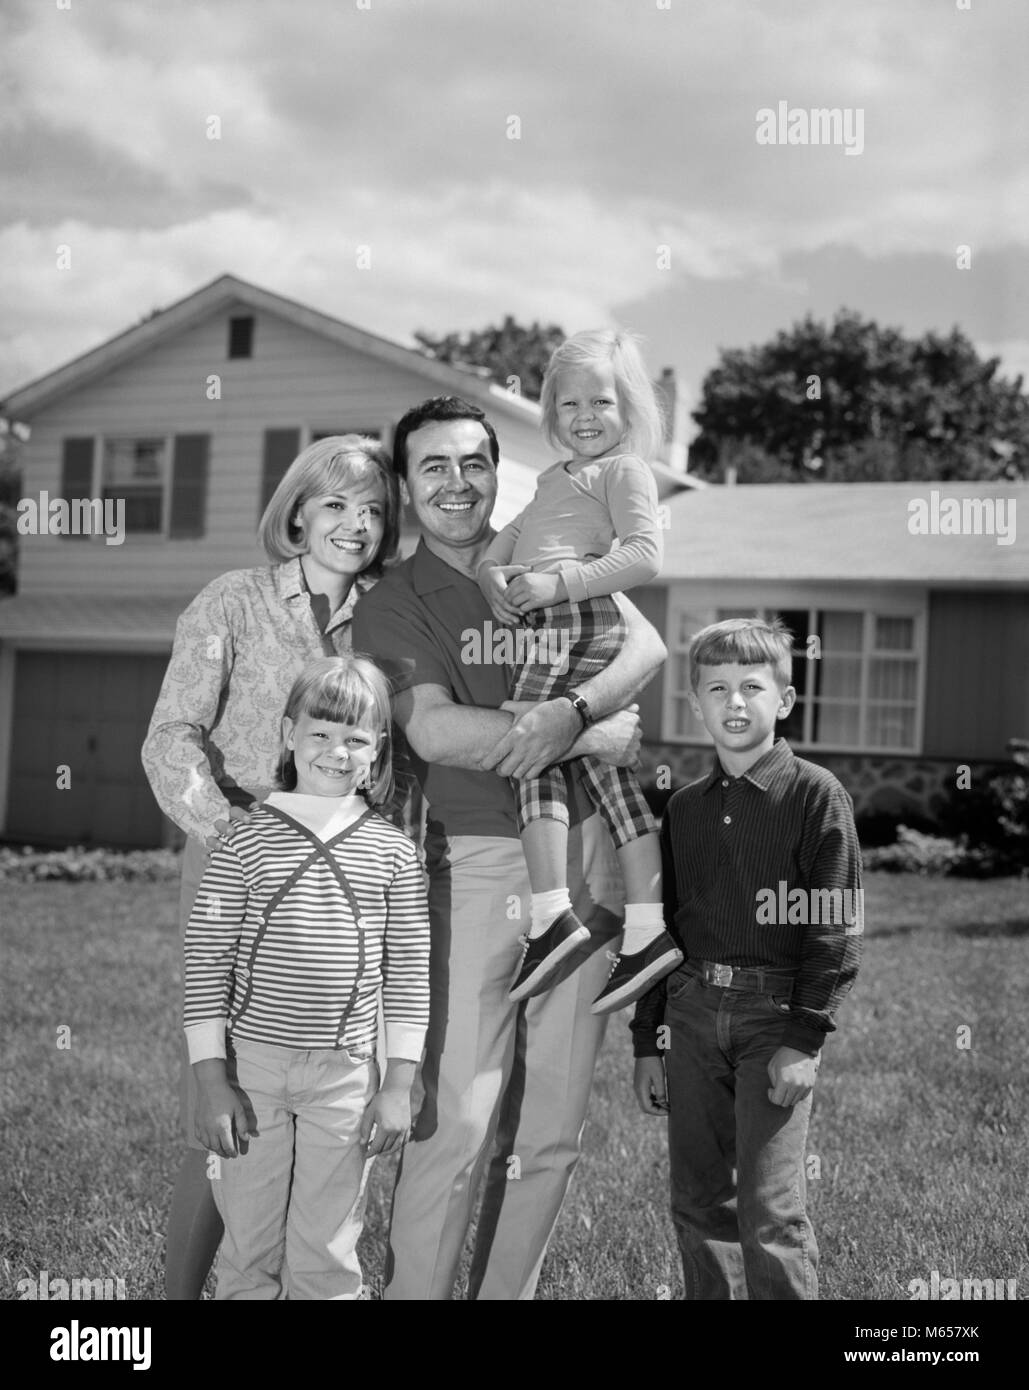 1960s 1970s FAMILY PORTRAIT OF FIVE POSED LOOKING AT CAMERA ON FRONT LAWN OF SUBURBAN HOUSE - j13144 HAR001 HARS - Stock Image